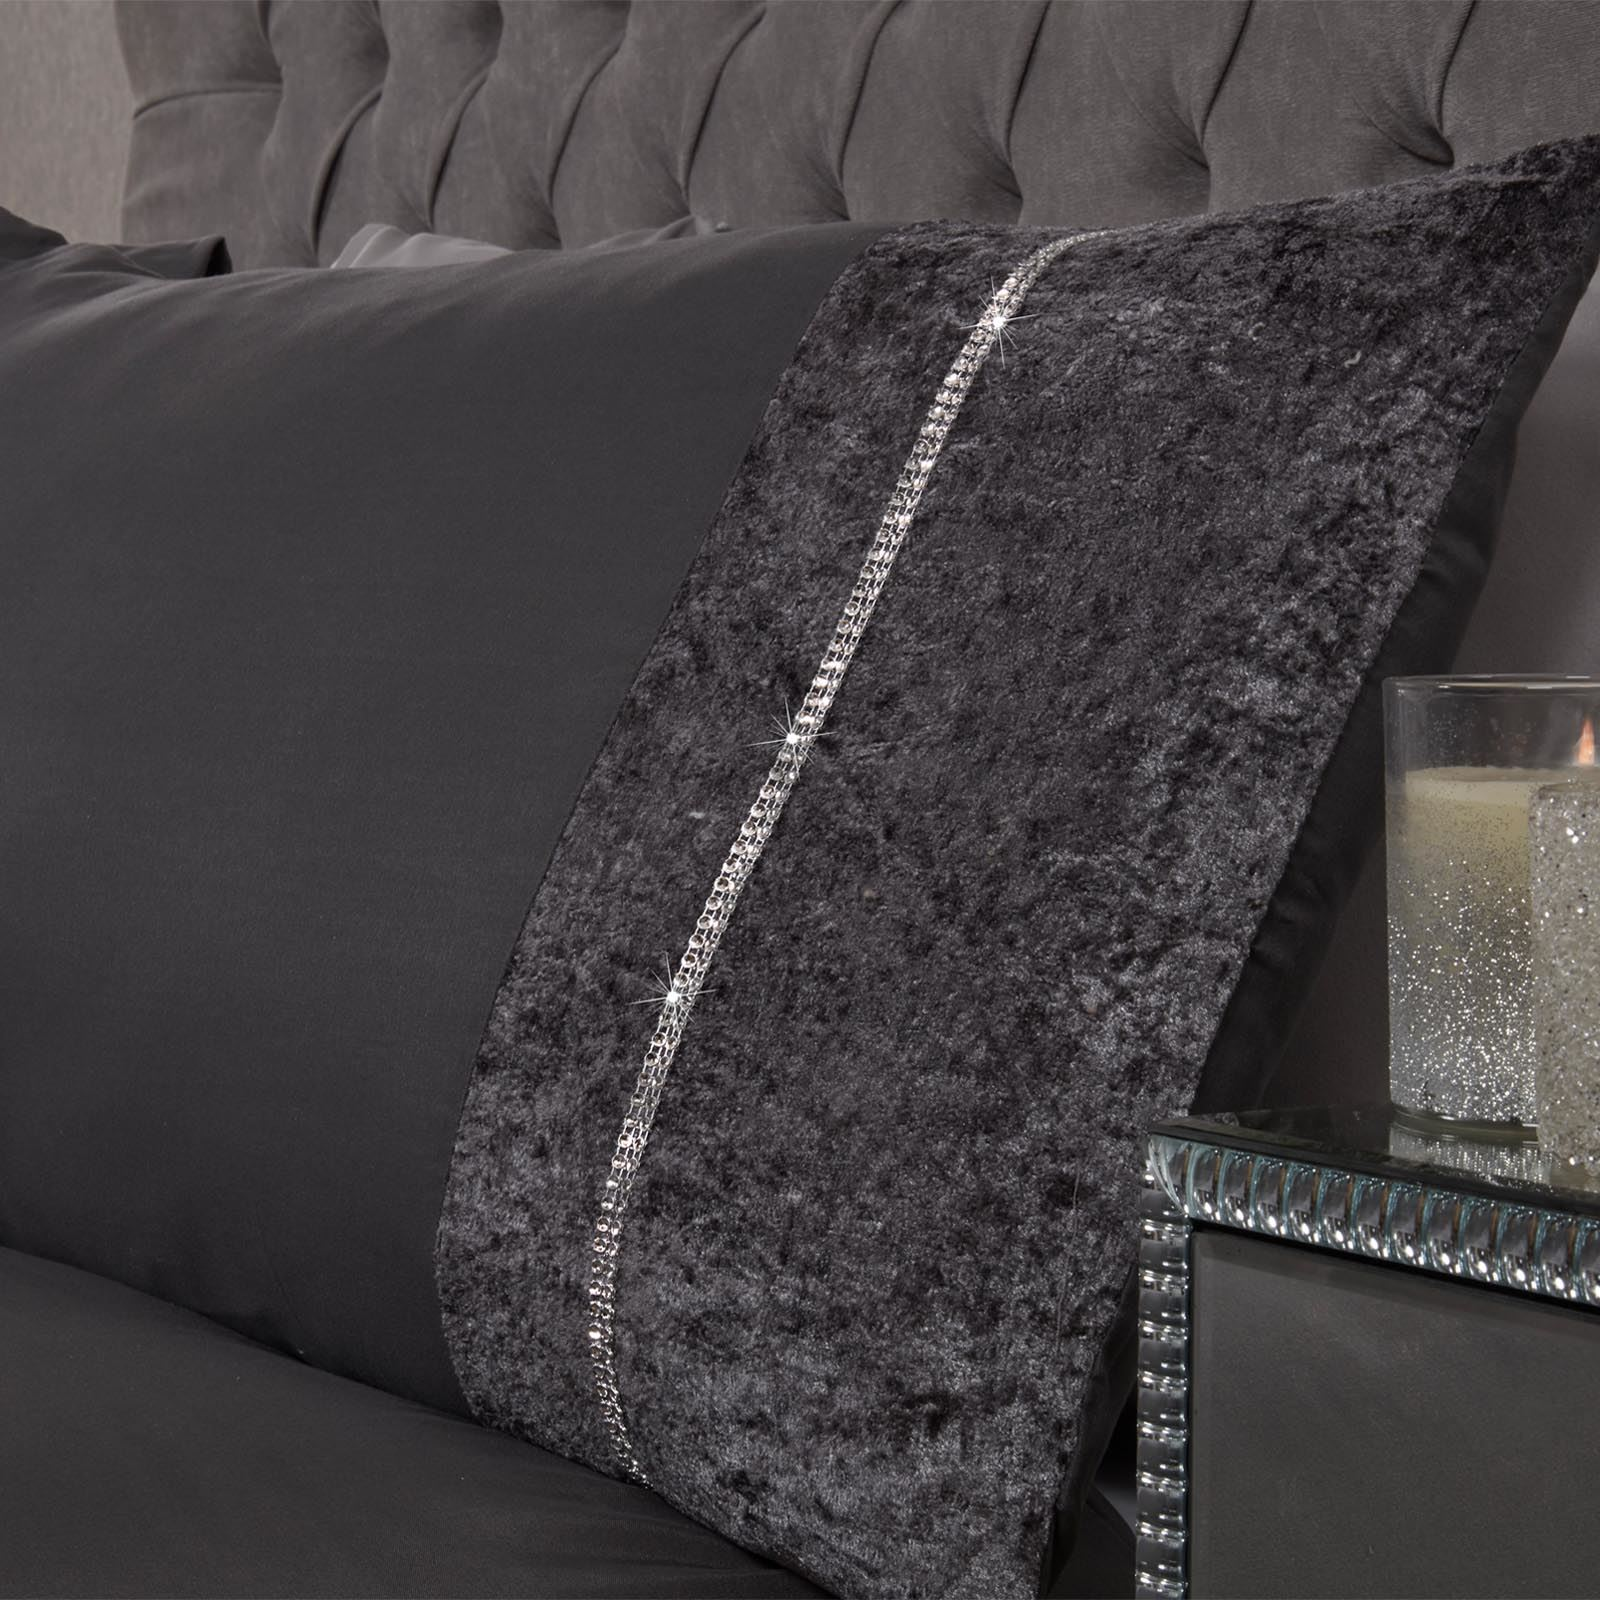 Sienna-Crushed-Velvet-Diamante-Band-Duvet-Cover-with-Pillowcase-Grey-Bedding-Set thumbnail 5